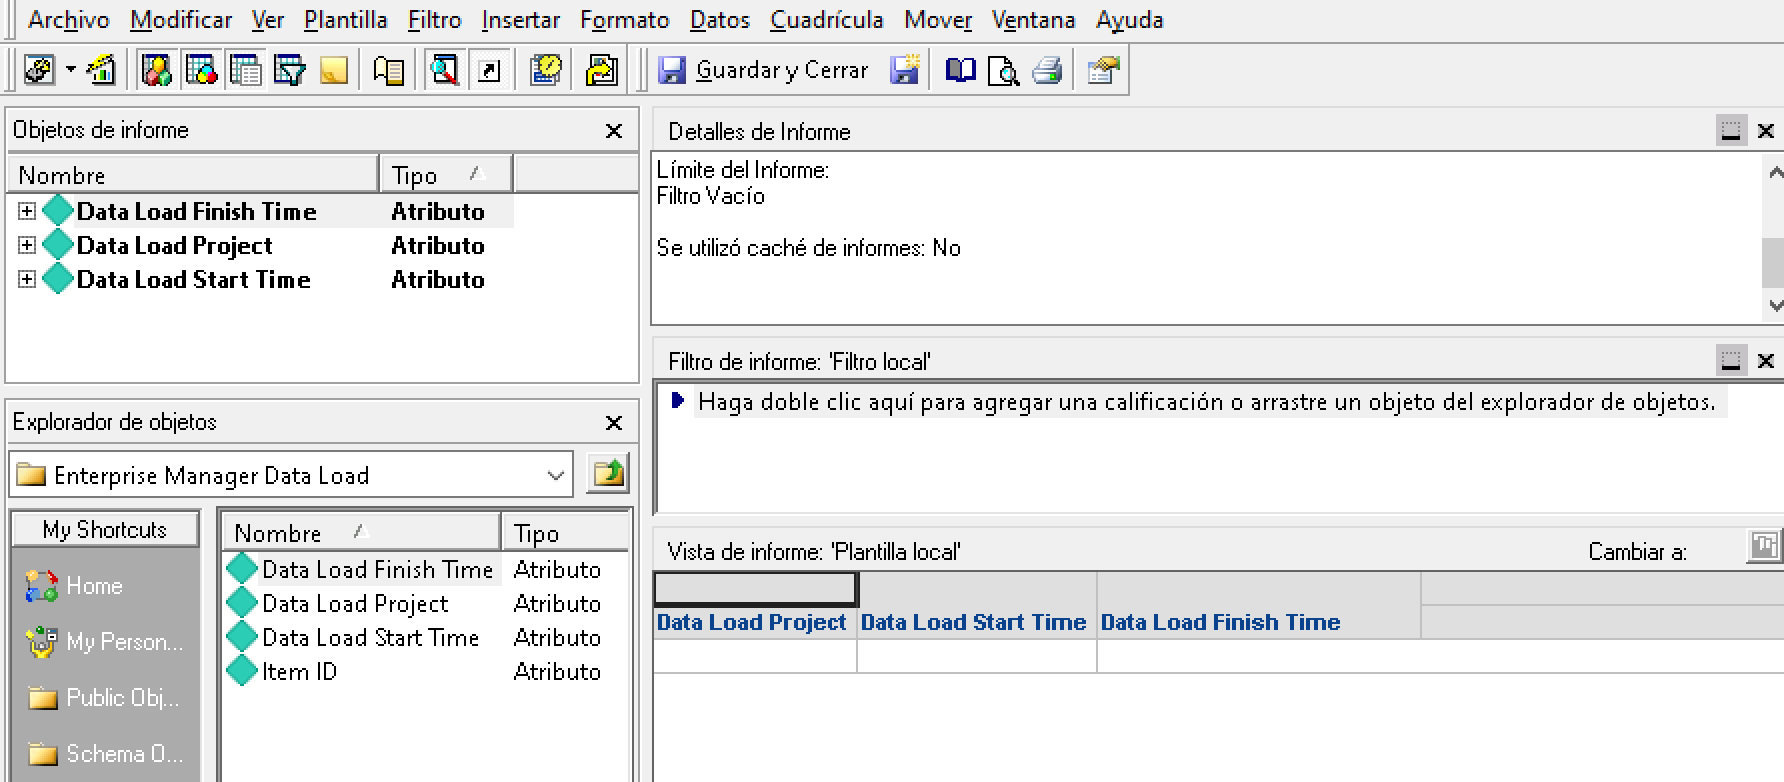 Enterprise Manager Data Load